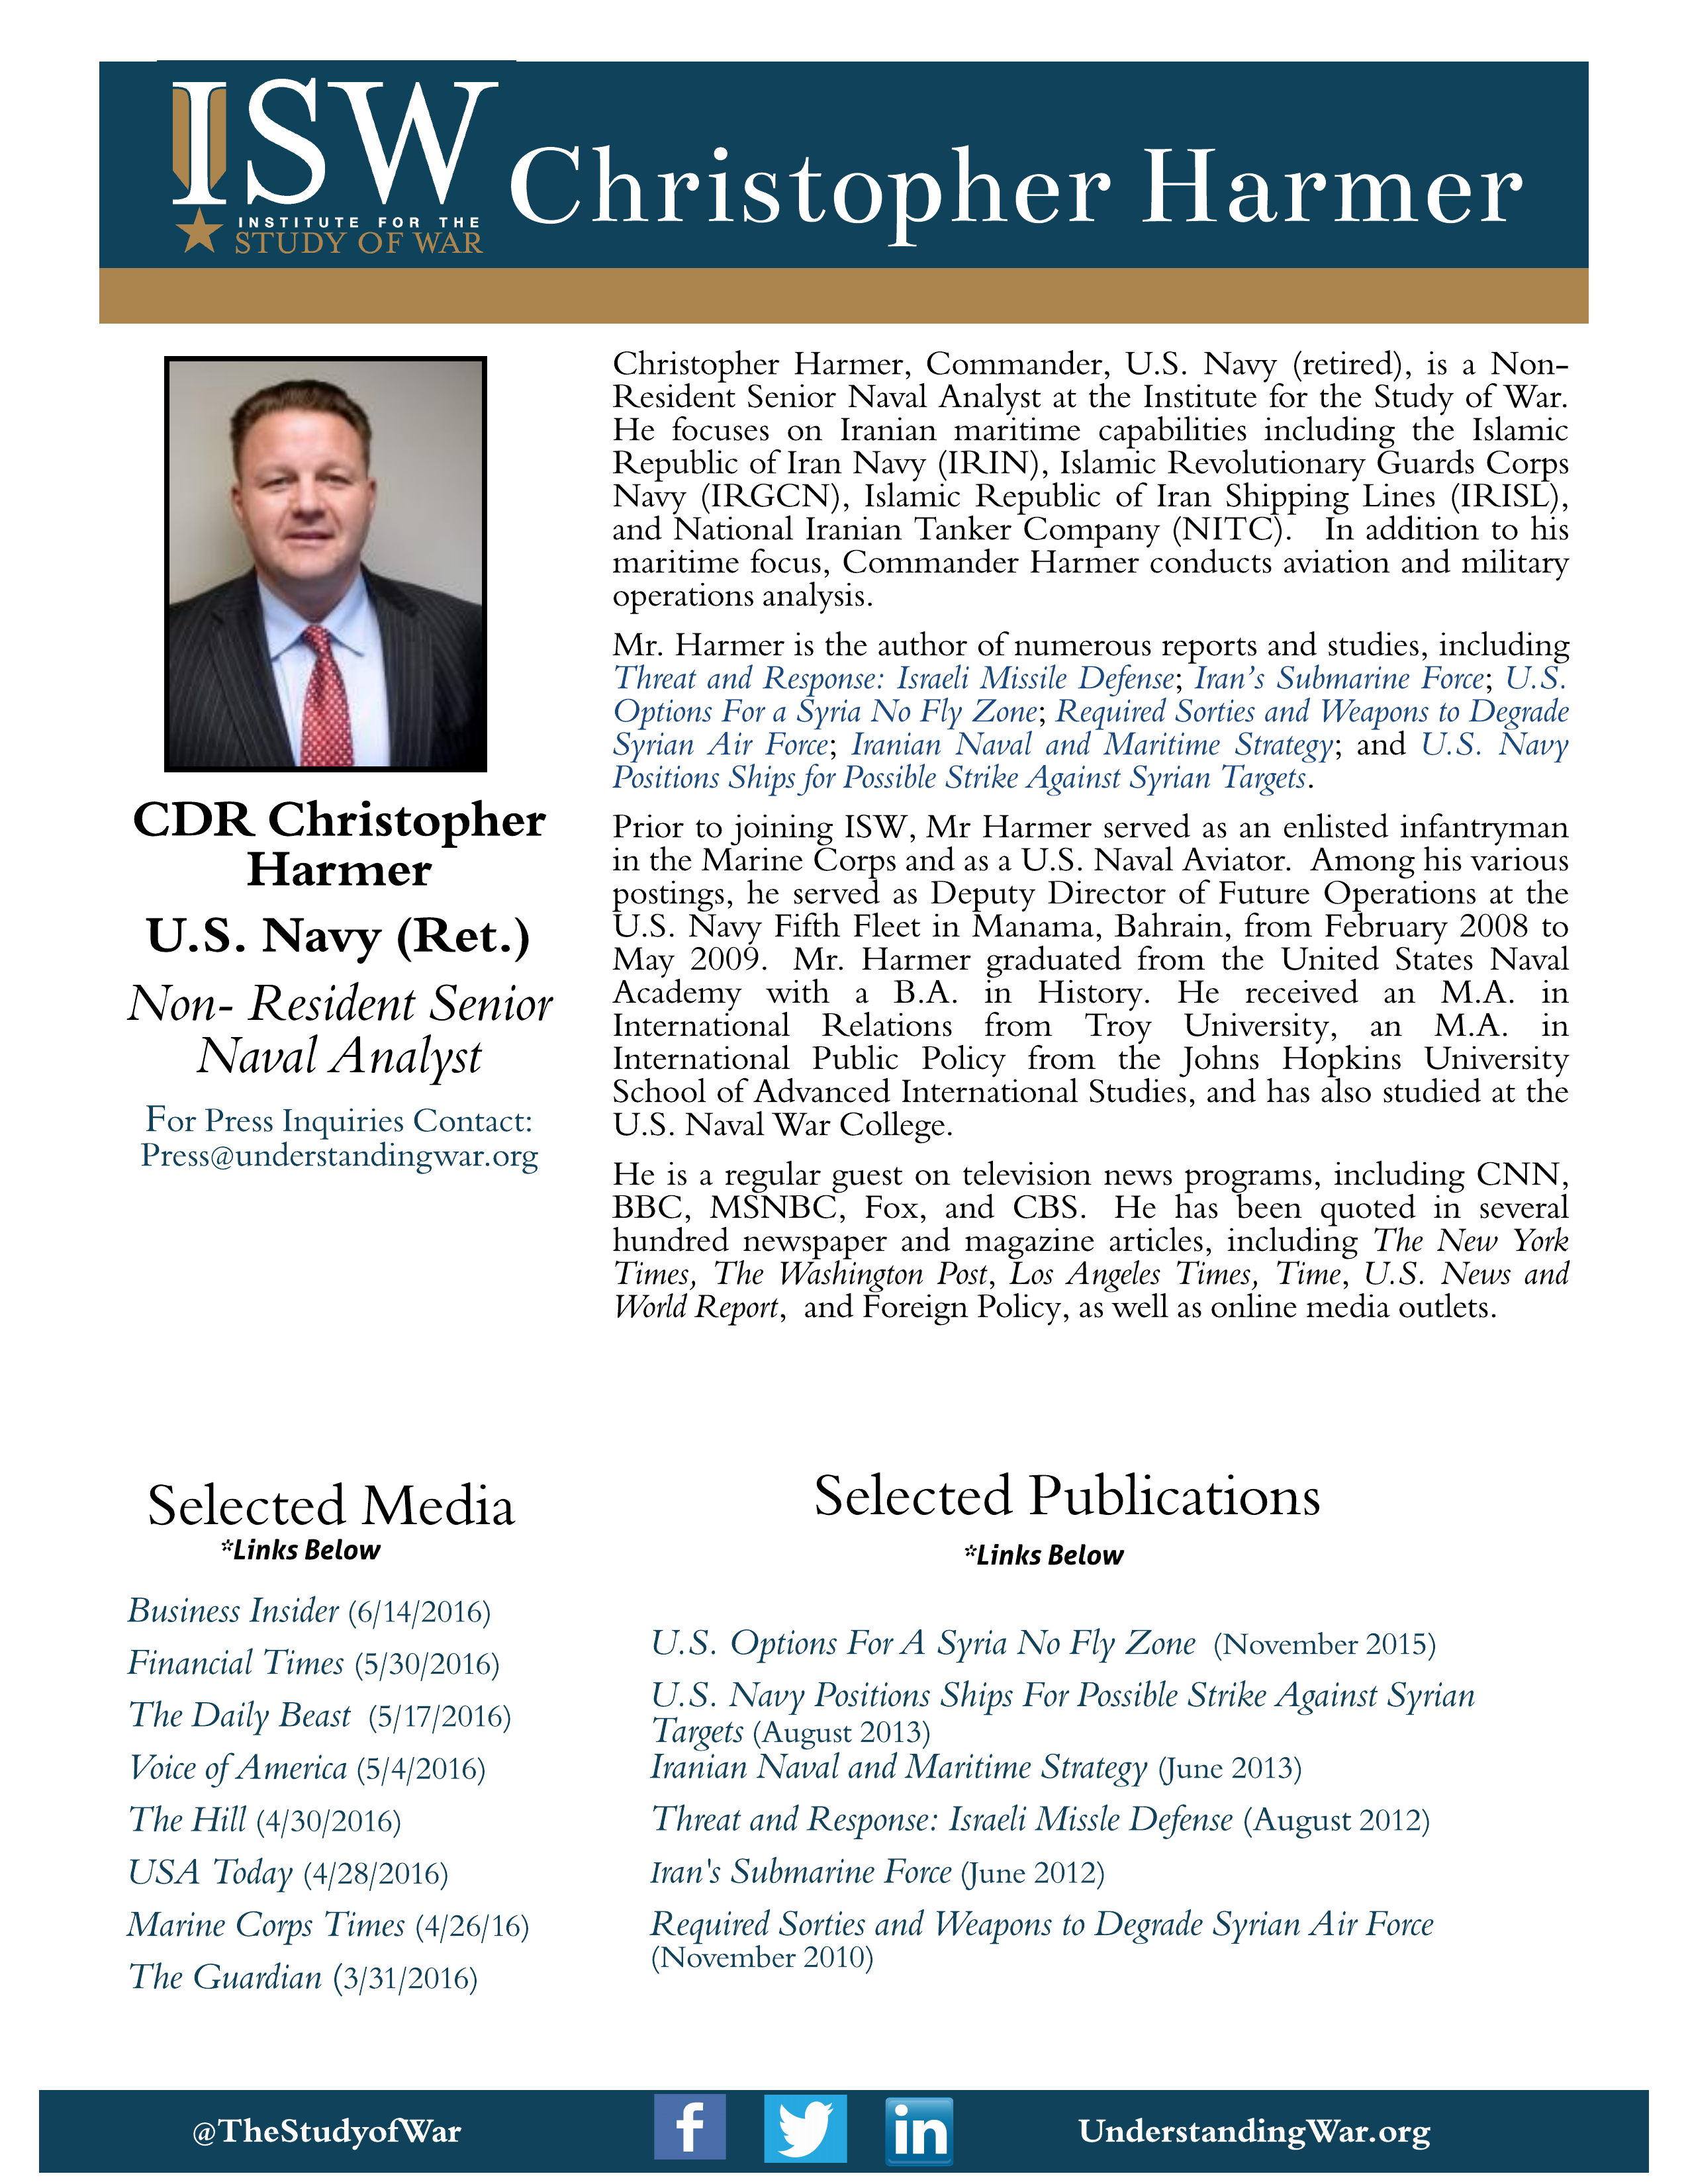 Chris Harmer One Page Bio Institute For The Study Of War